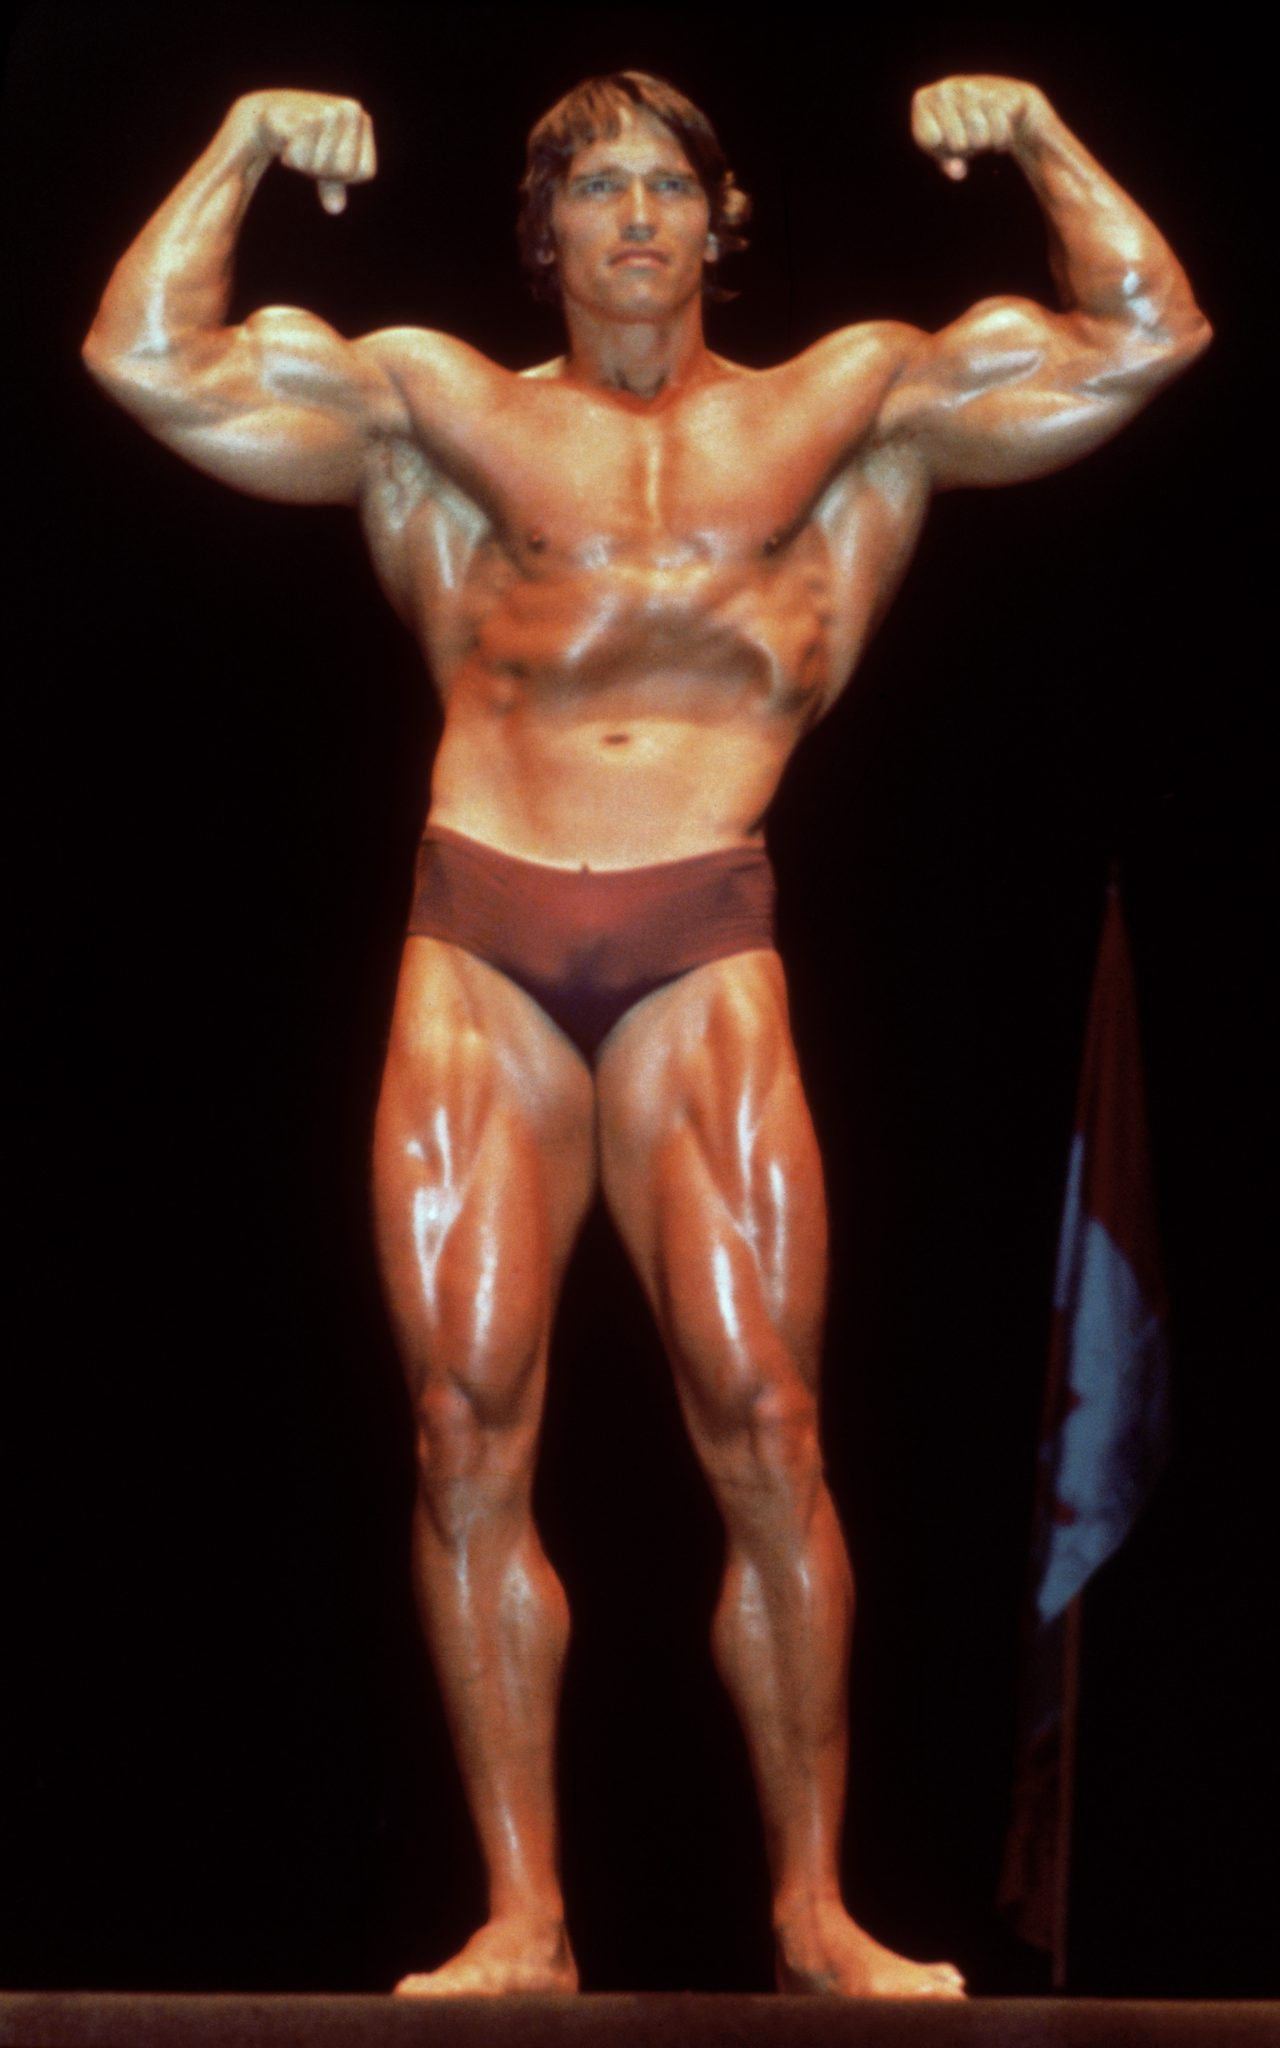 Training like an early bodybuilding icon will still get you